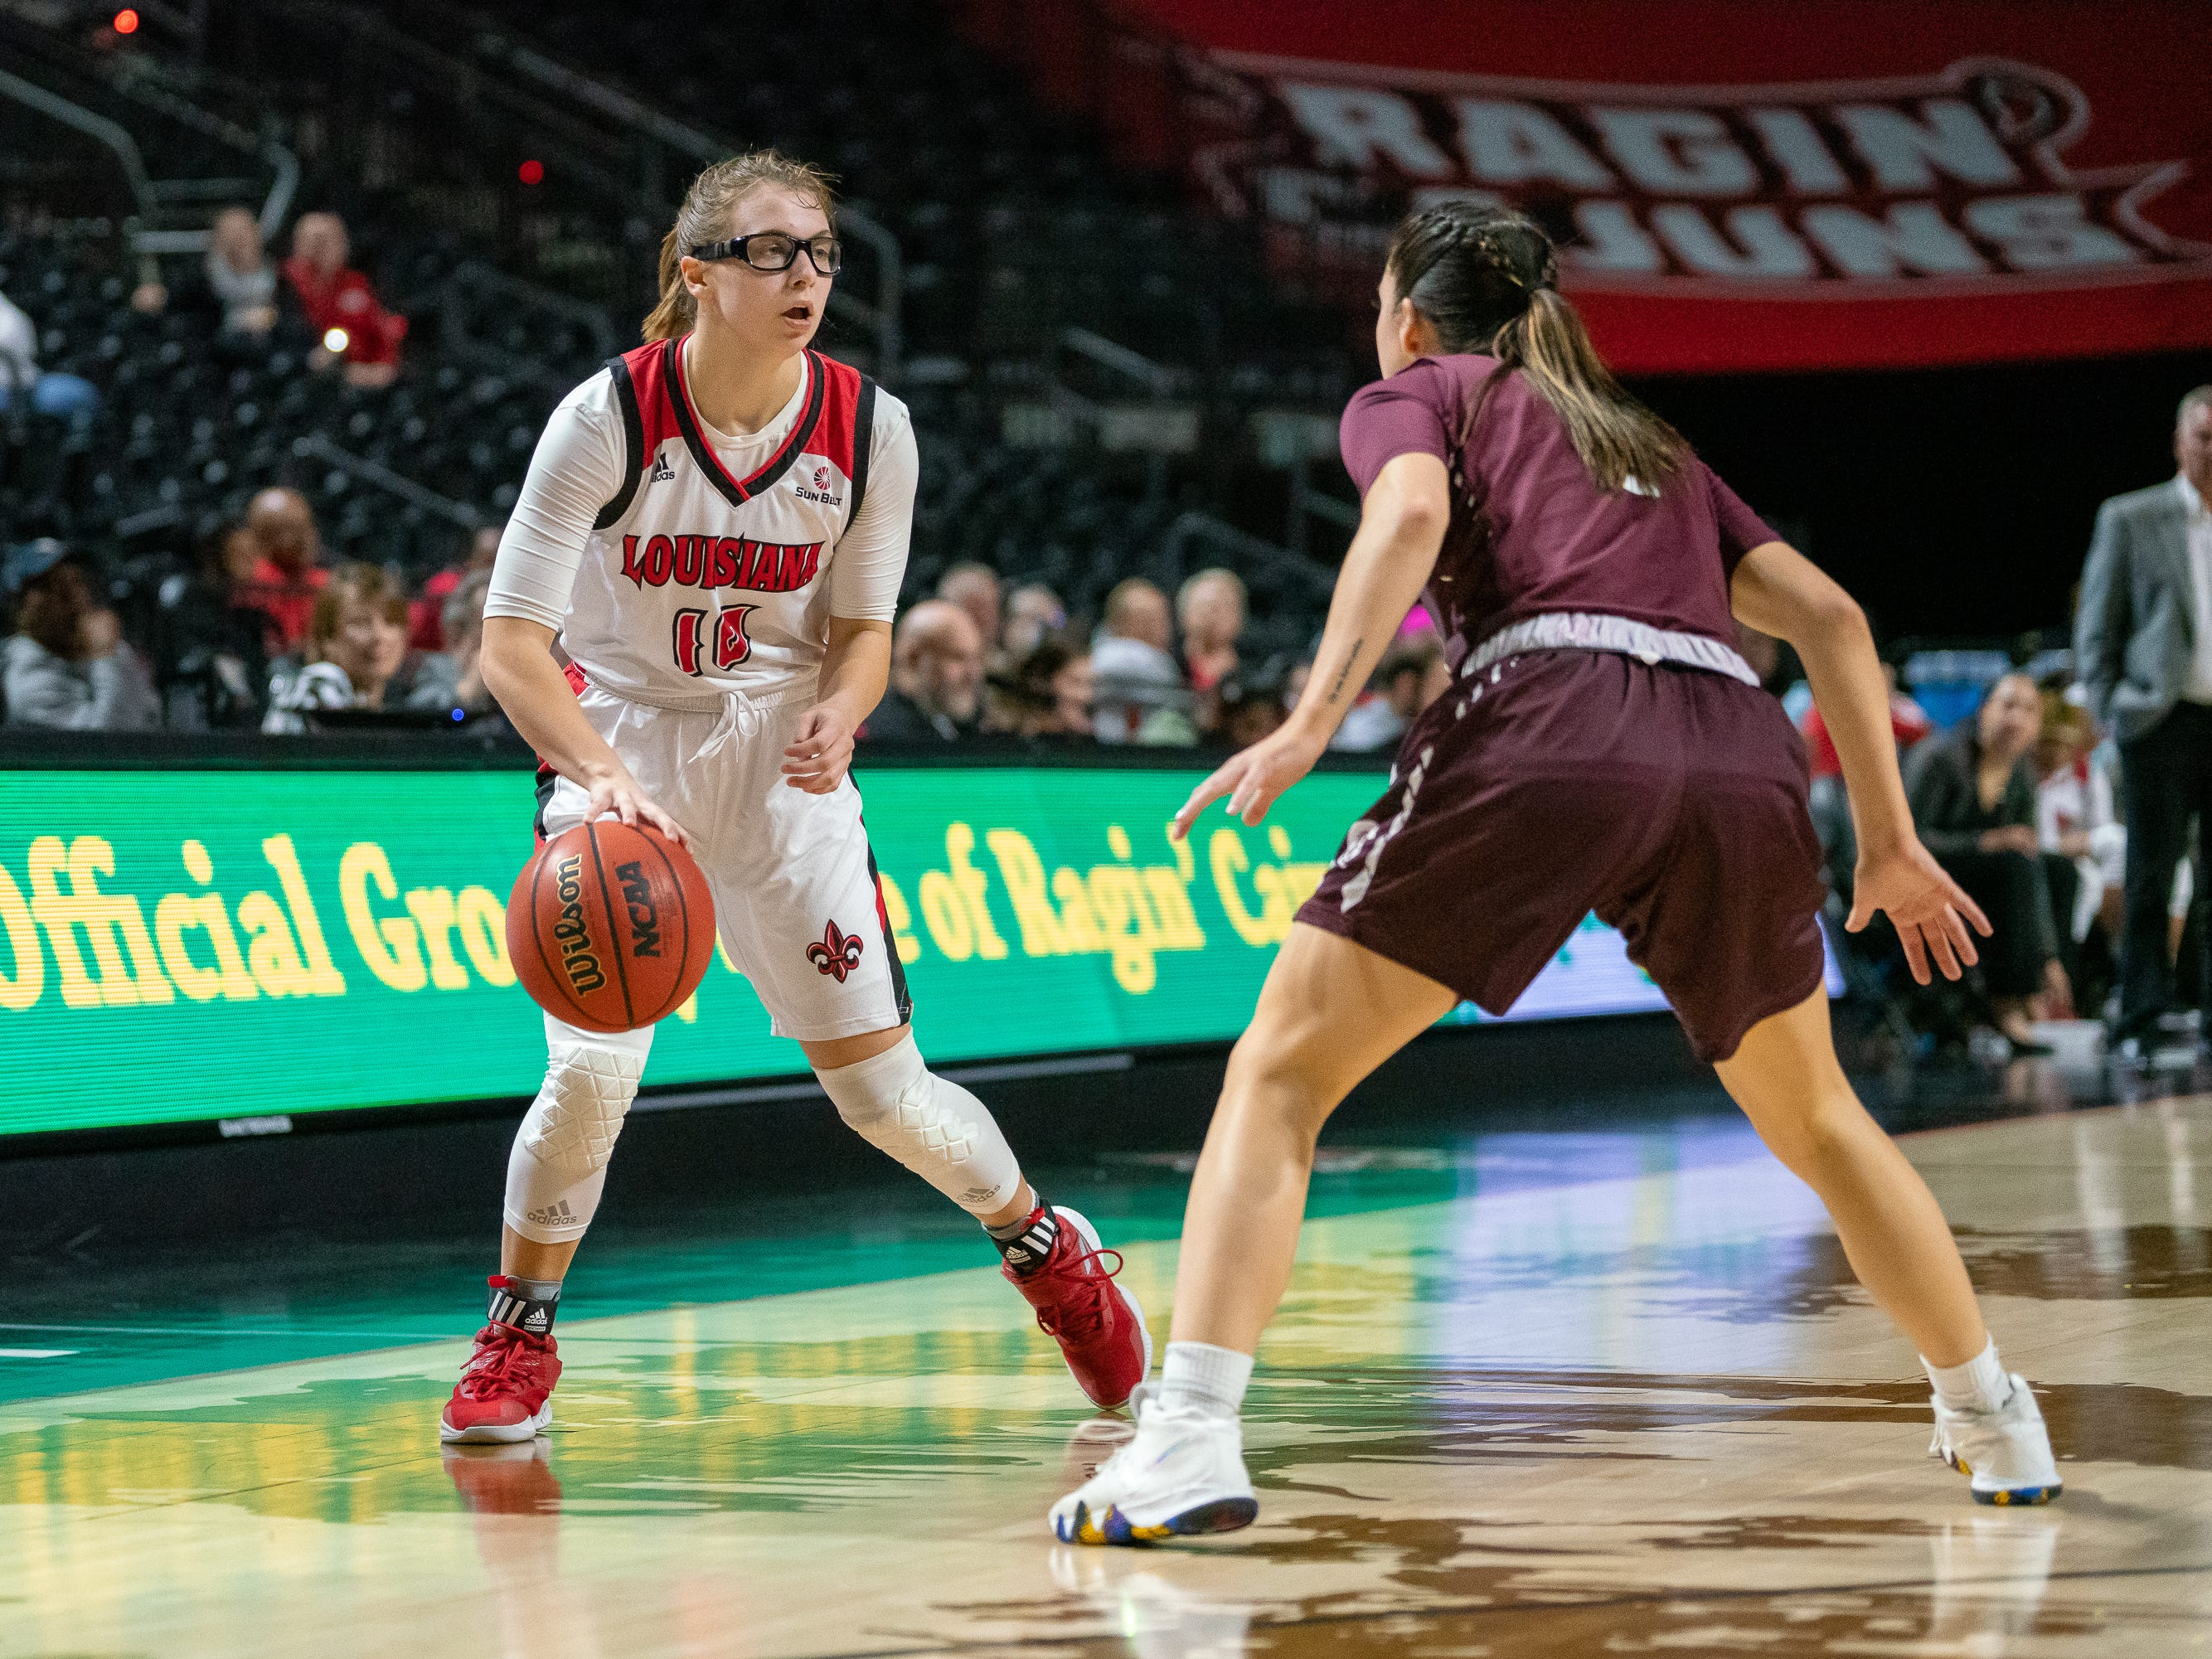 UL's Andrea Cournoyer looks for an open teammate during the play as the Ragin' Cajuns take on the Little Rock Trojans at the Cajundome on Thursday, March 7, 2019.